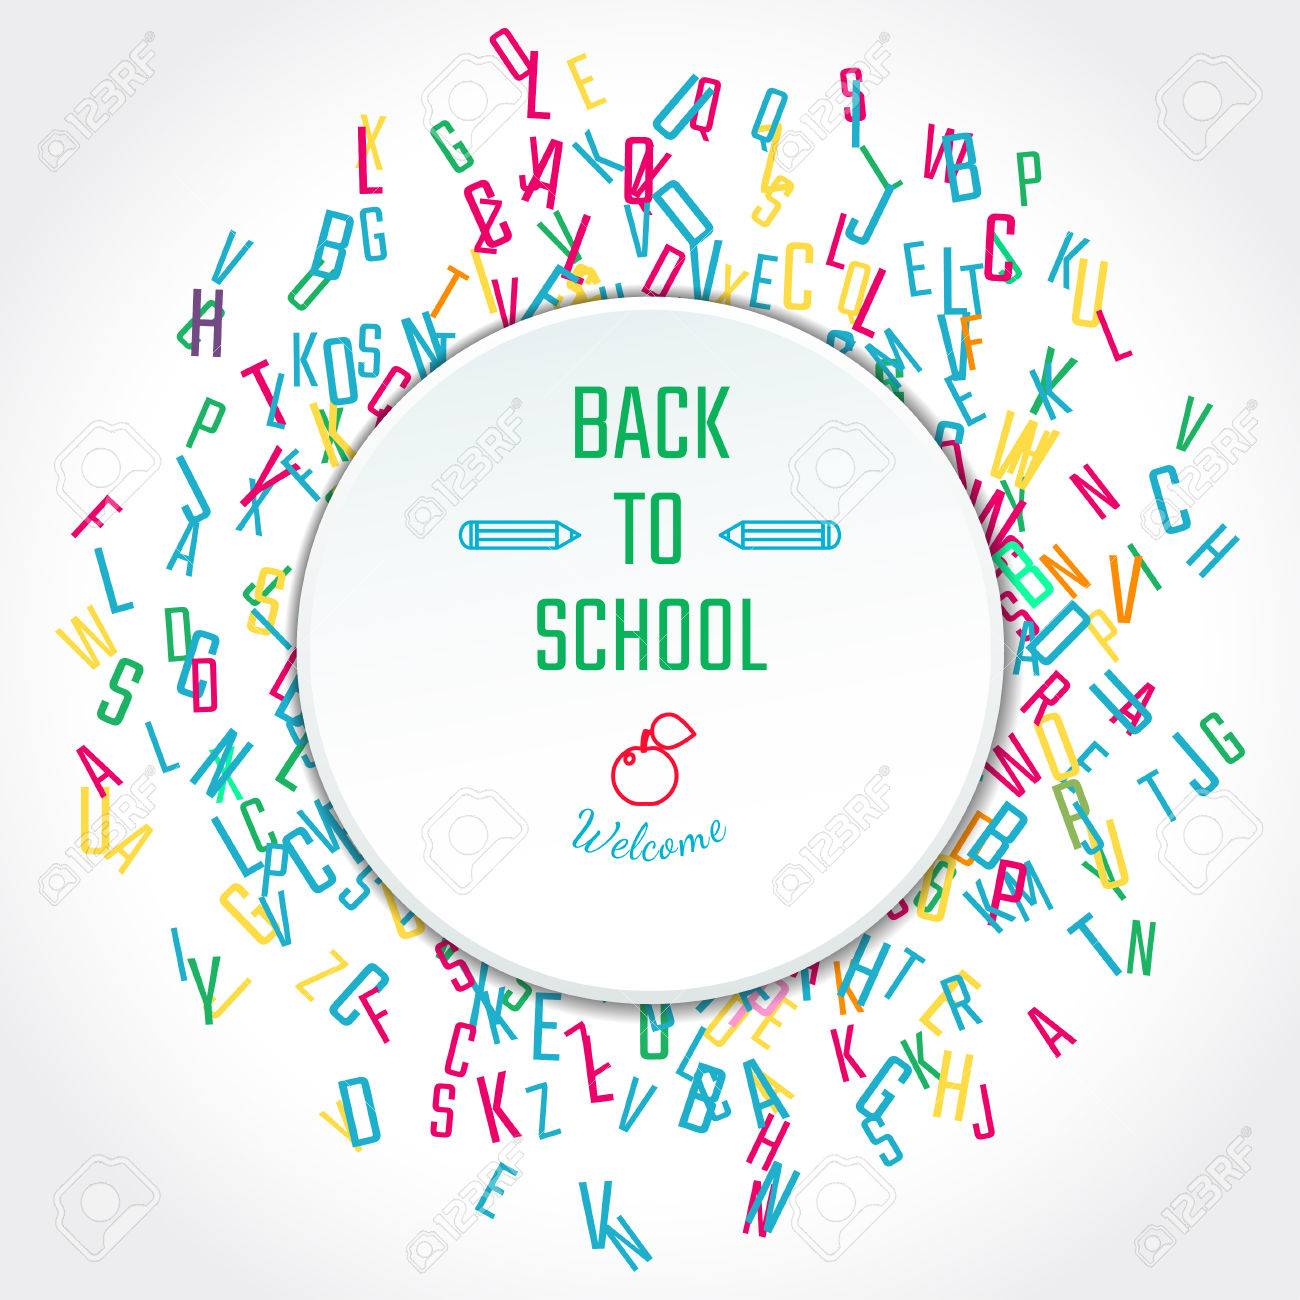 Vector Illustration Of Back To School For Design Website Background Royalty Free Cliparts Vectors And Stock Illustration Image 59868562